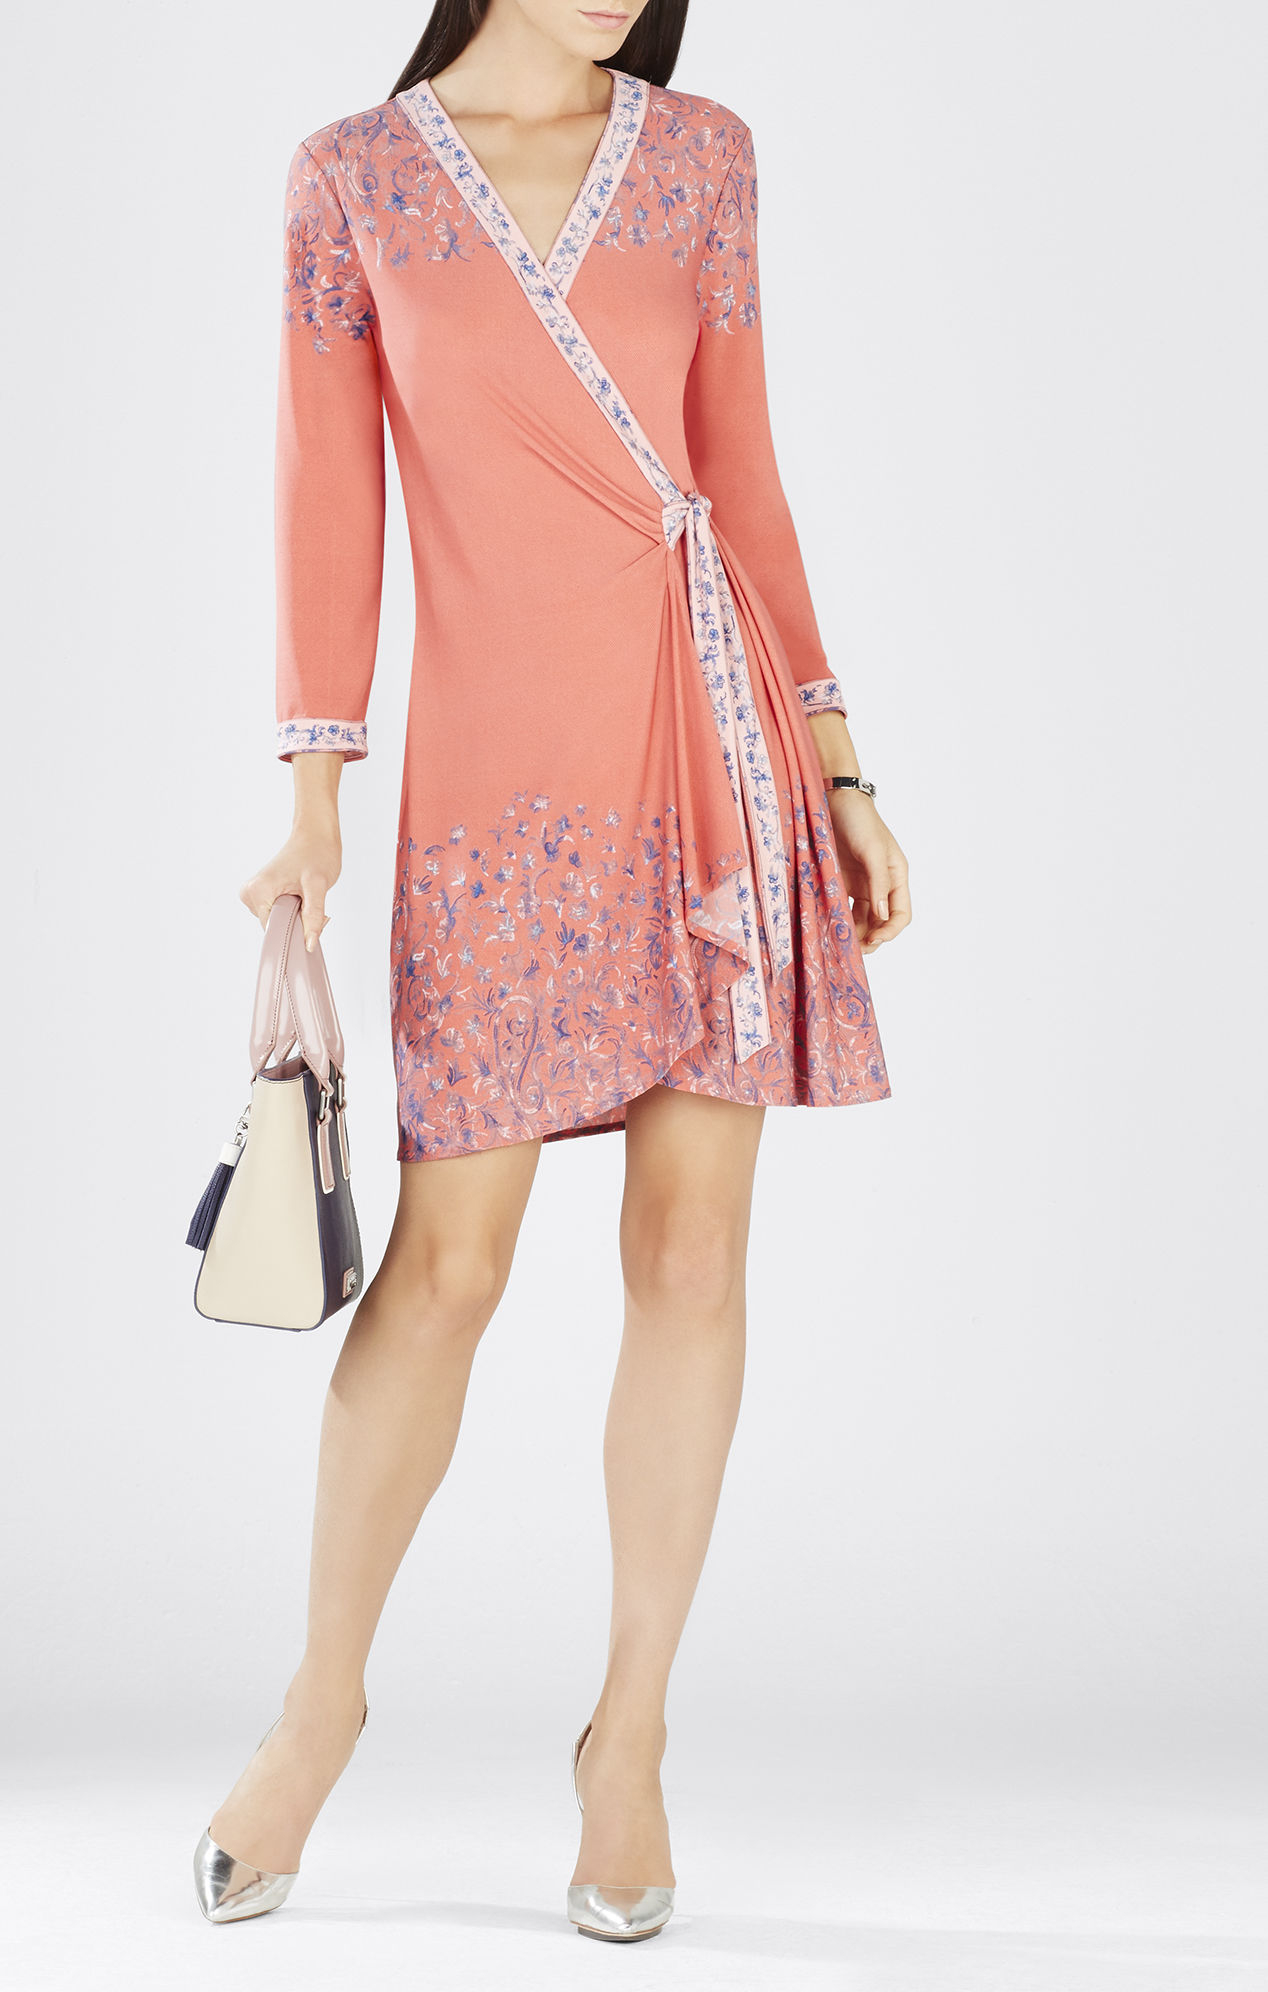 Lyst - BCBGMAXAZRIA Adele Printed Wrap Dress in Pink e6b9709e979